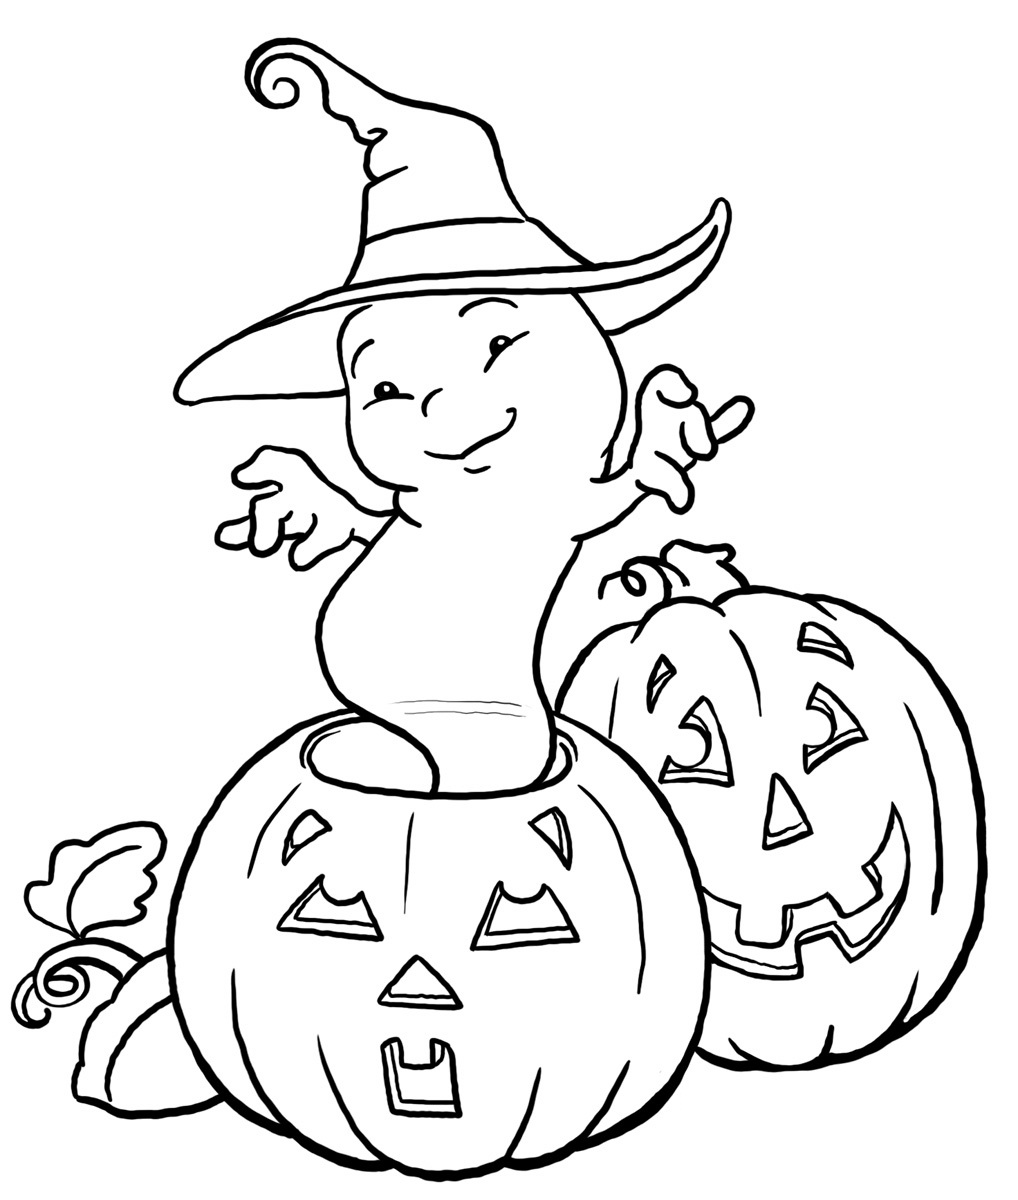 1018x1200 Free Printable Ghost Coloring Pages For Kids